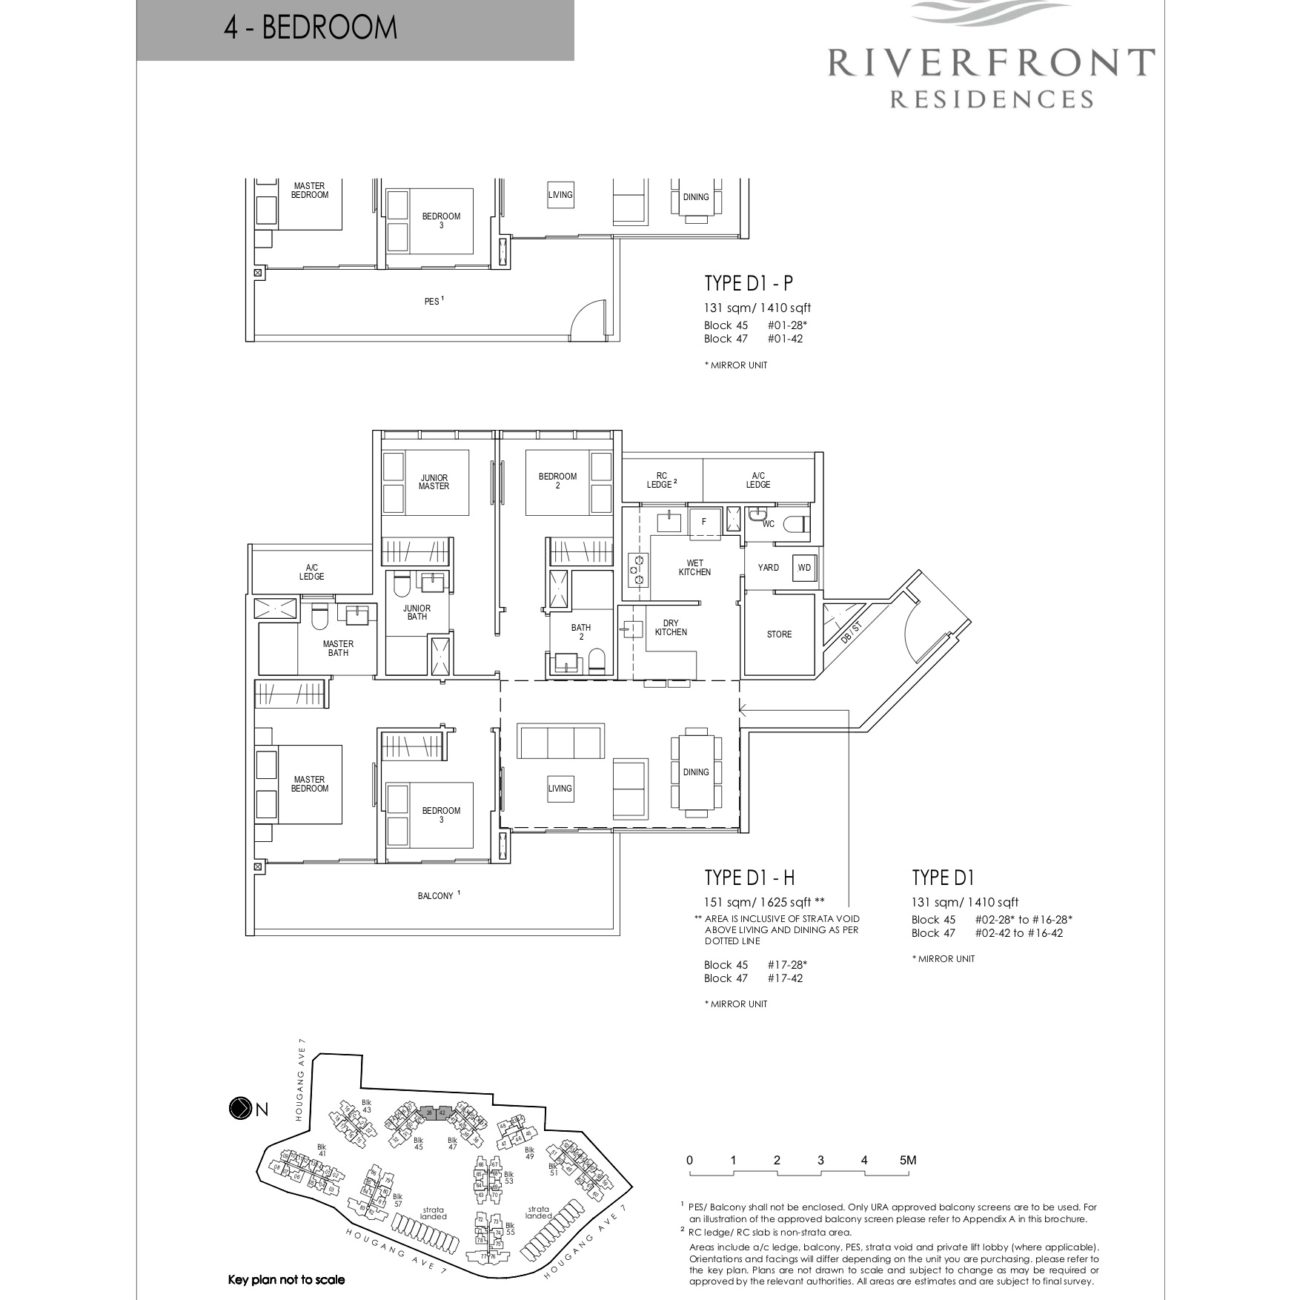 riverfront-residences-floorplan-4bedroom-d1